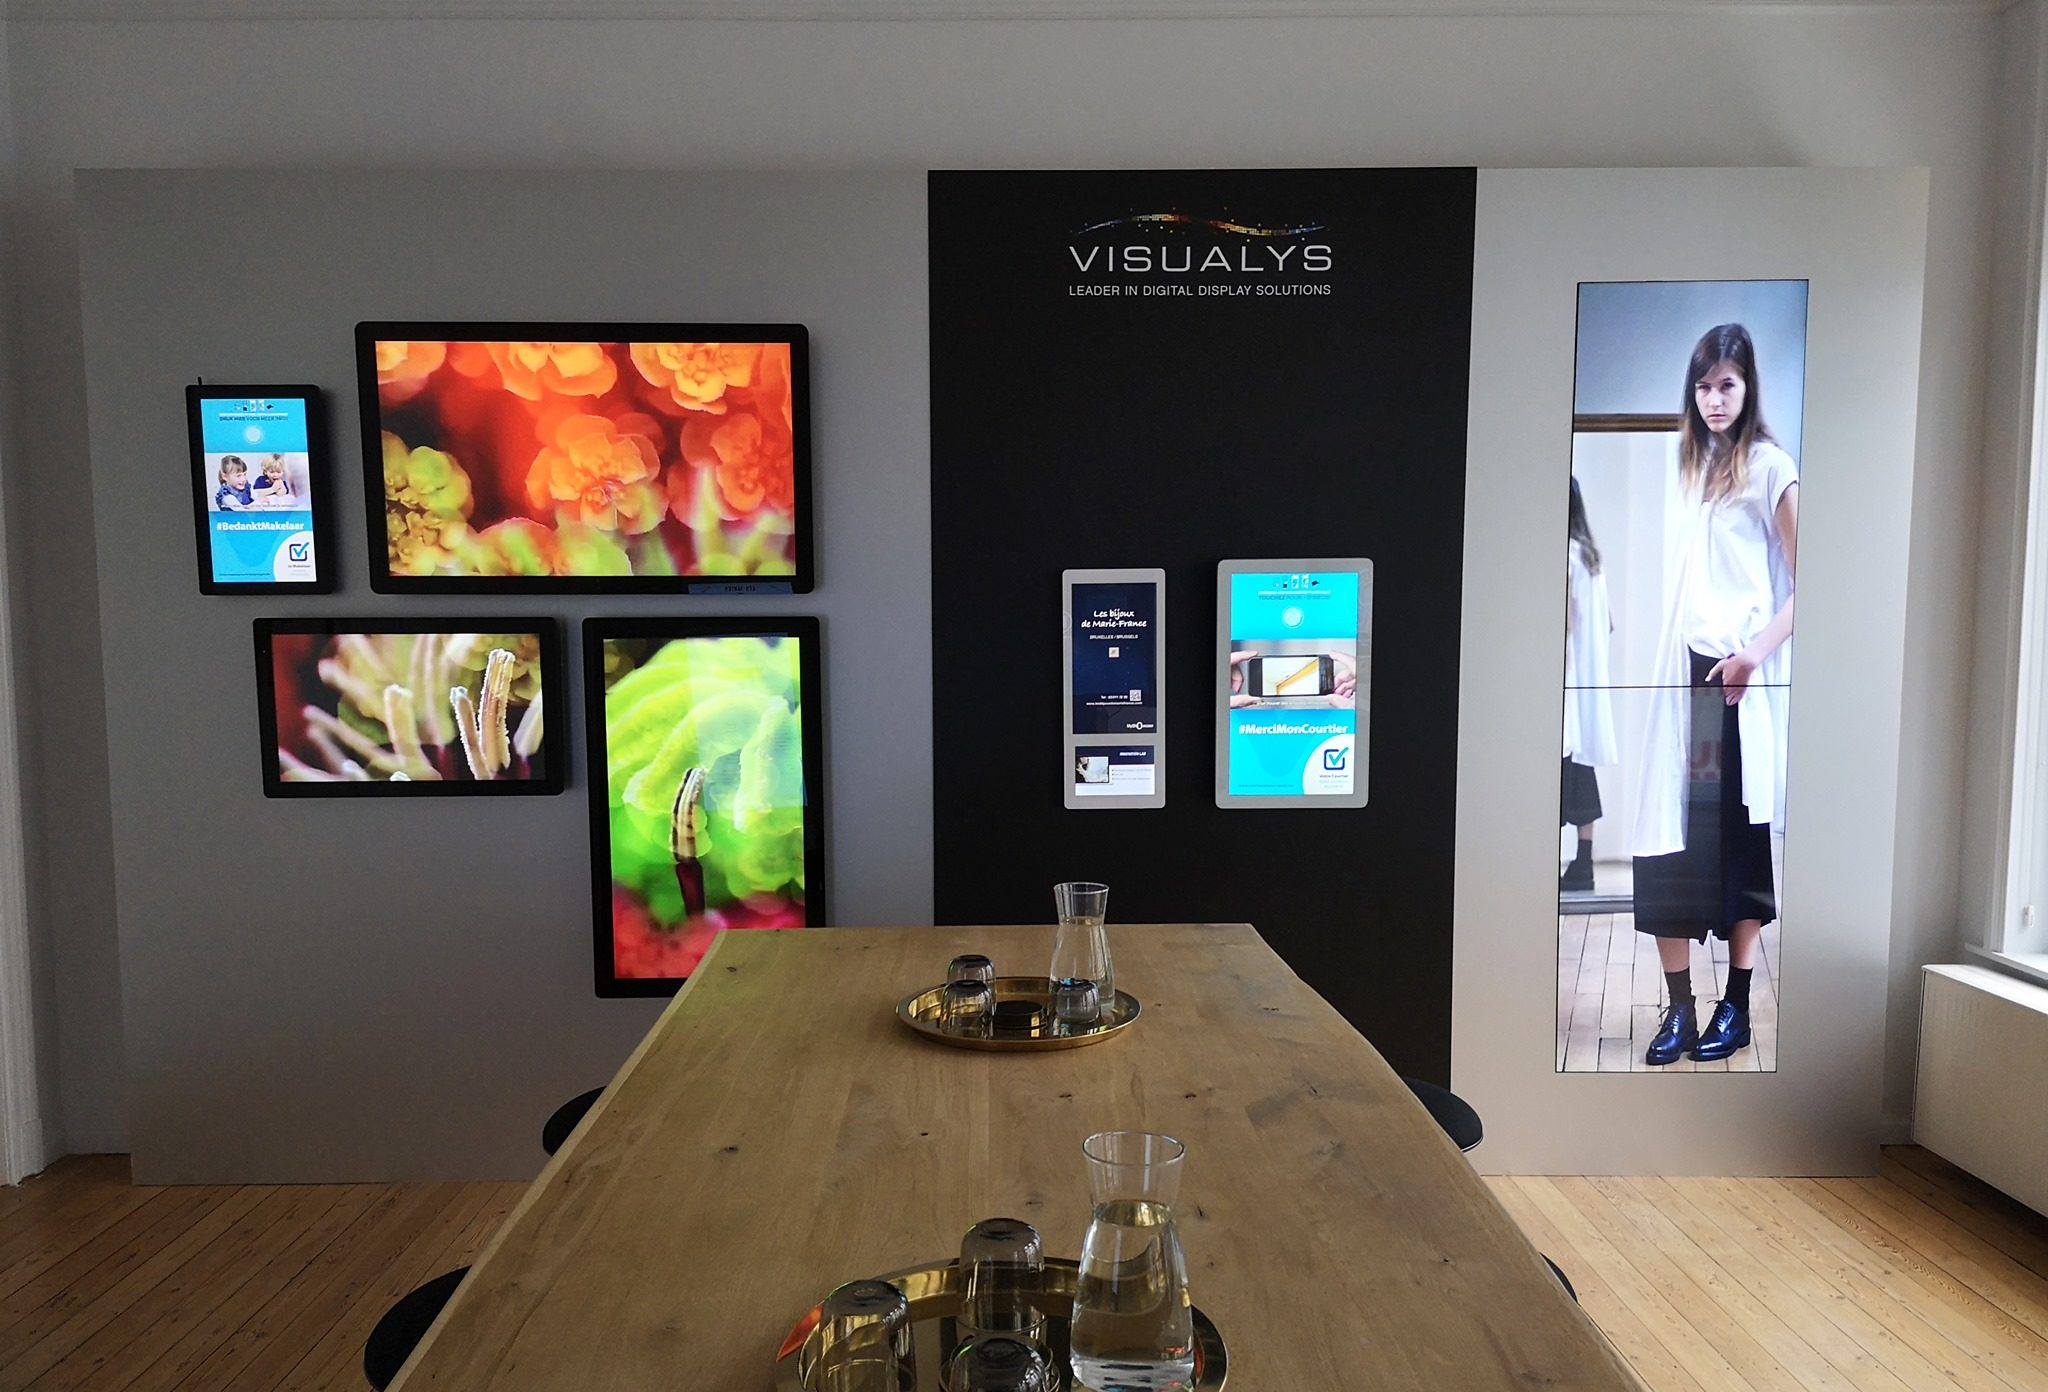 showroom visualys